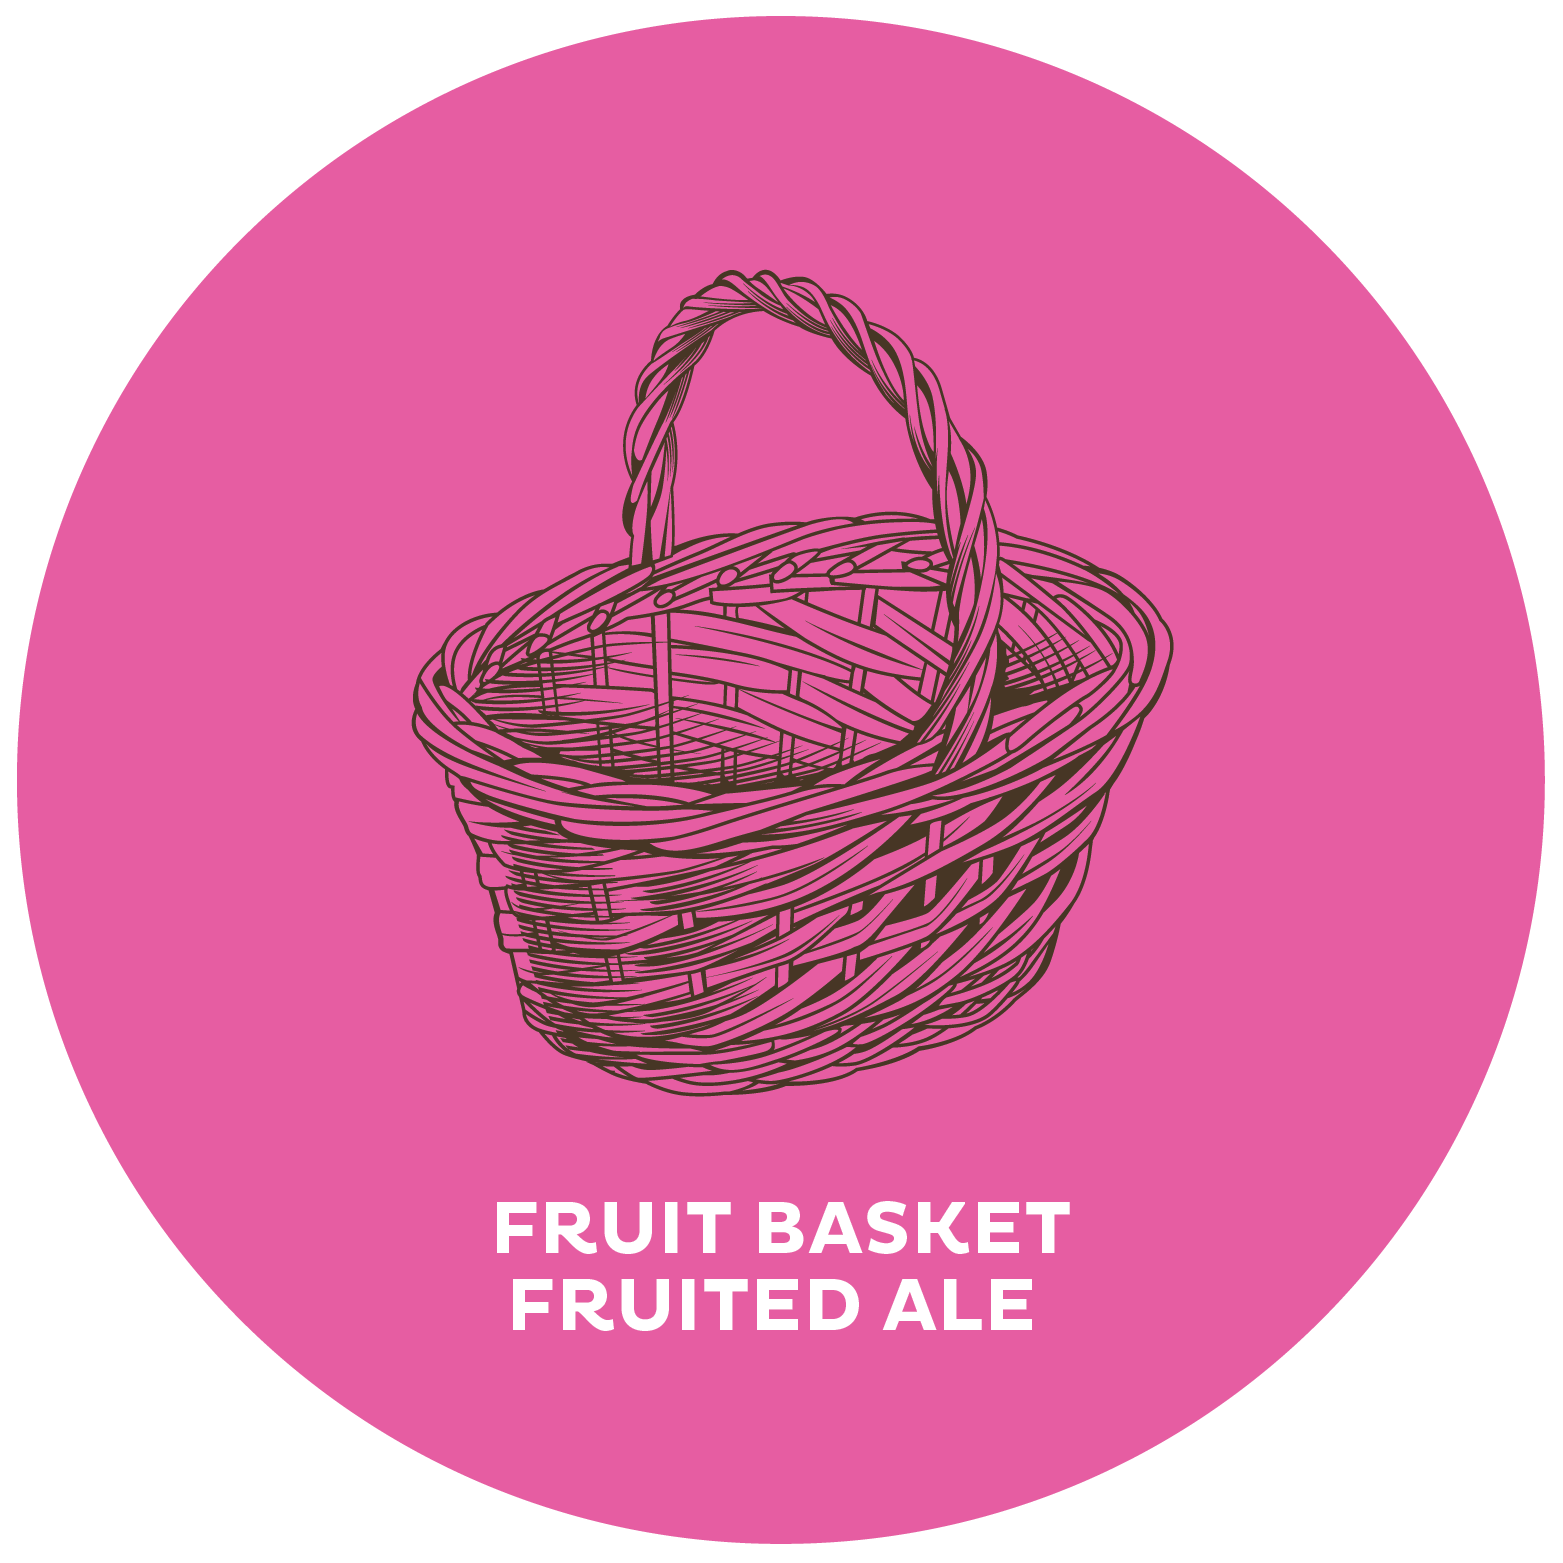 FruitBasketGraphic-01.png